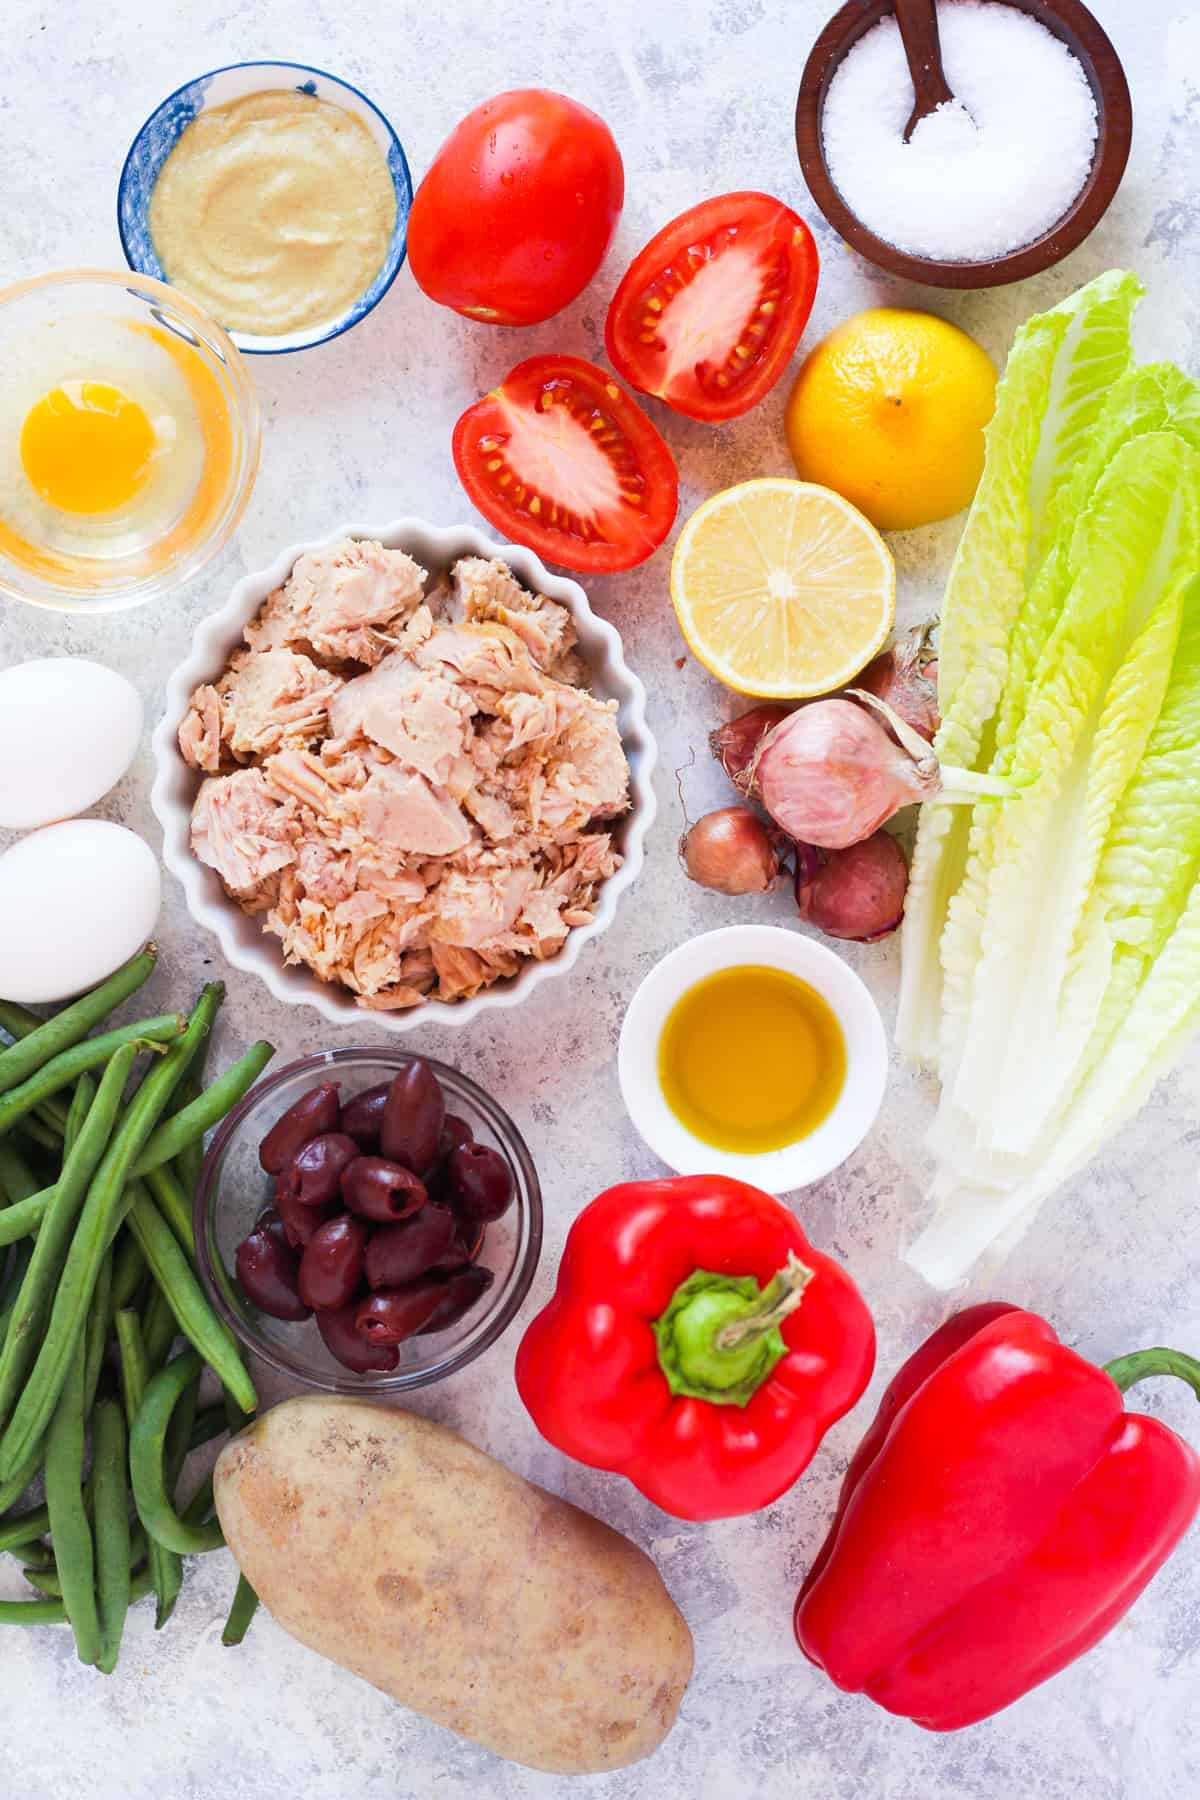 2 yukon gold potatoes peeled and cut into 1 ½ inch pieces 8 oz green beans 4 large hard boiled eggs ▢1 head lettuce washed and chopped 2 cans tuna in olive oil drained ½ red bell pepper sliced 1 cup nicoise olives or kalamata olives 2 roma tomatoes cut into large pieces 1 shallot sliced